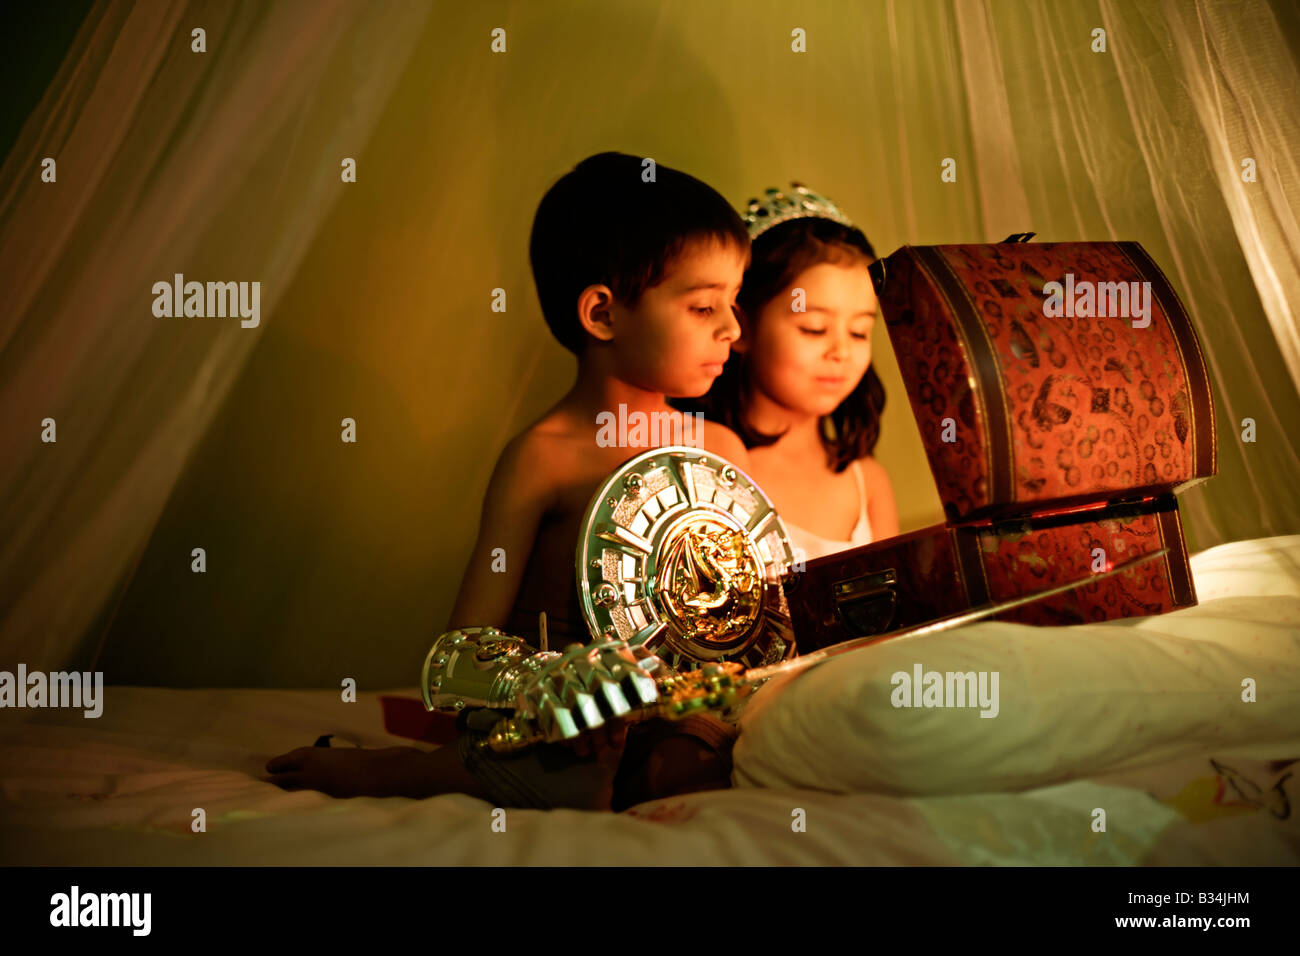 The magical treasure chest Five year old girl and six year old boy at play Brother and sister mixed race - Stock Image